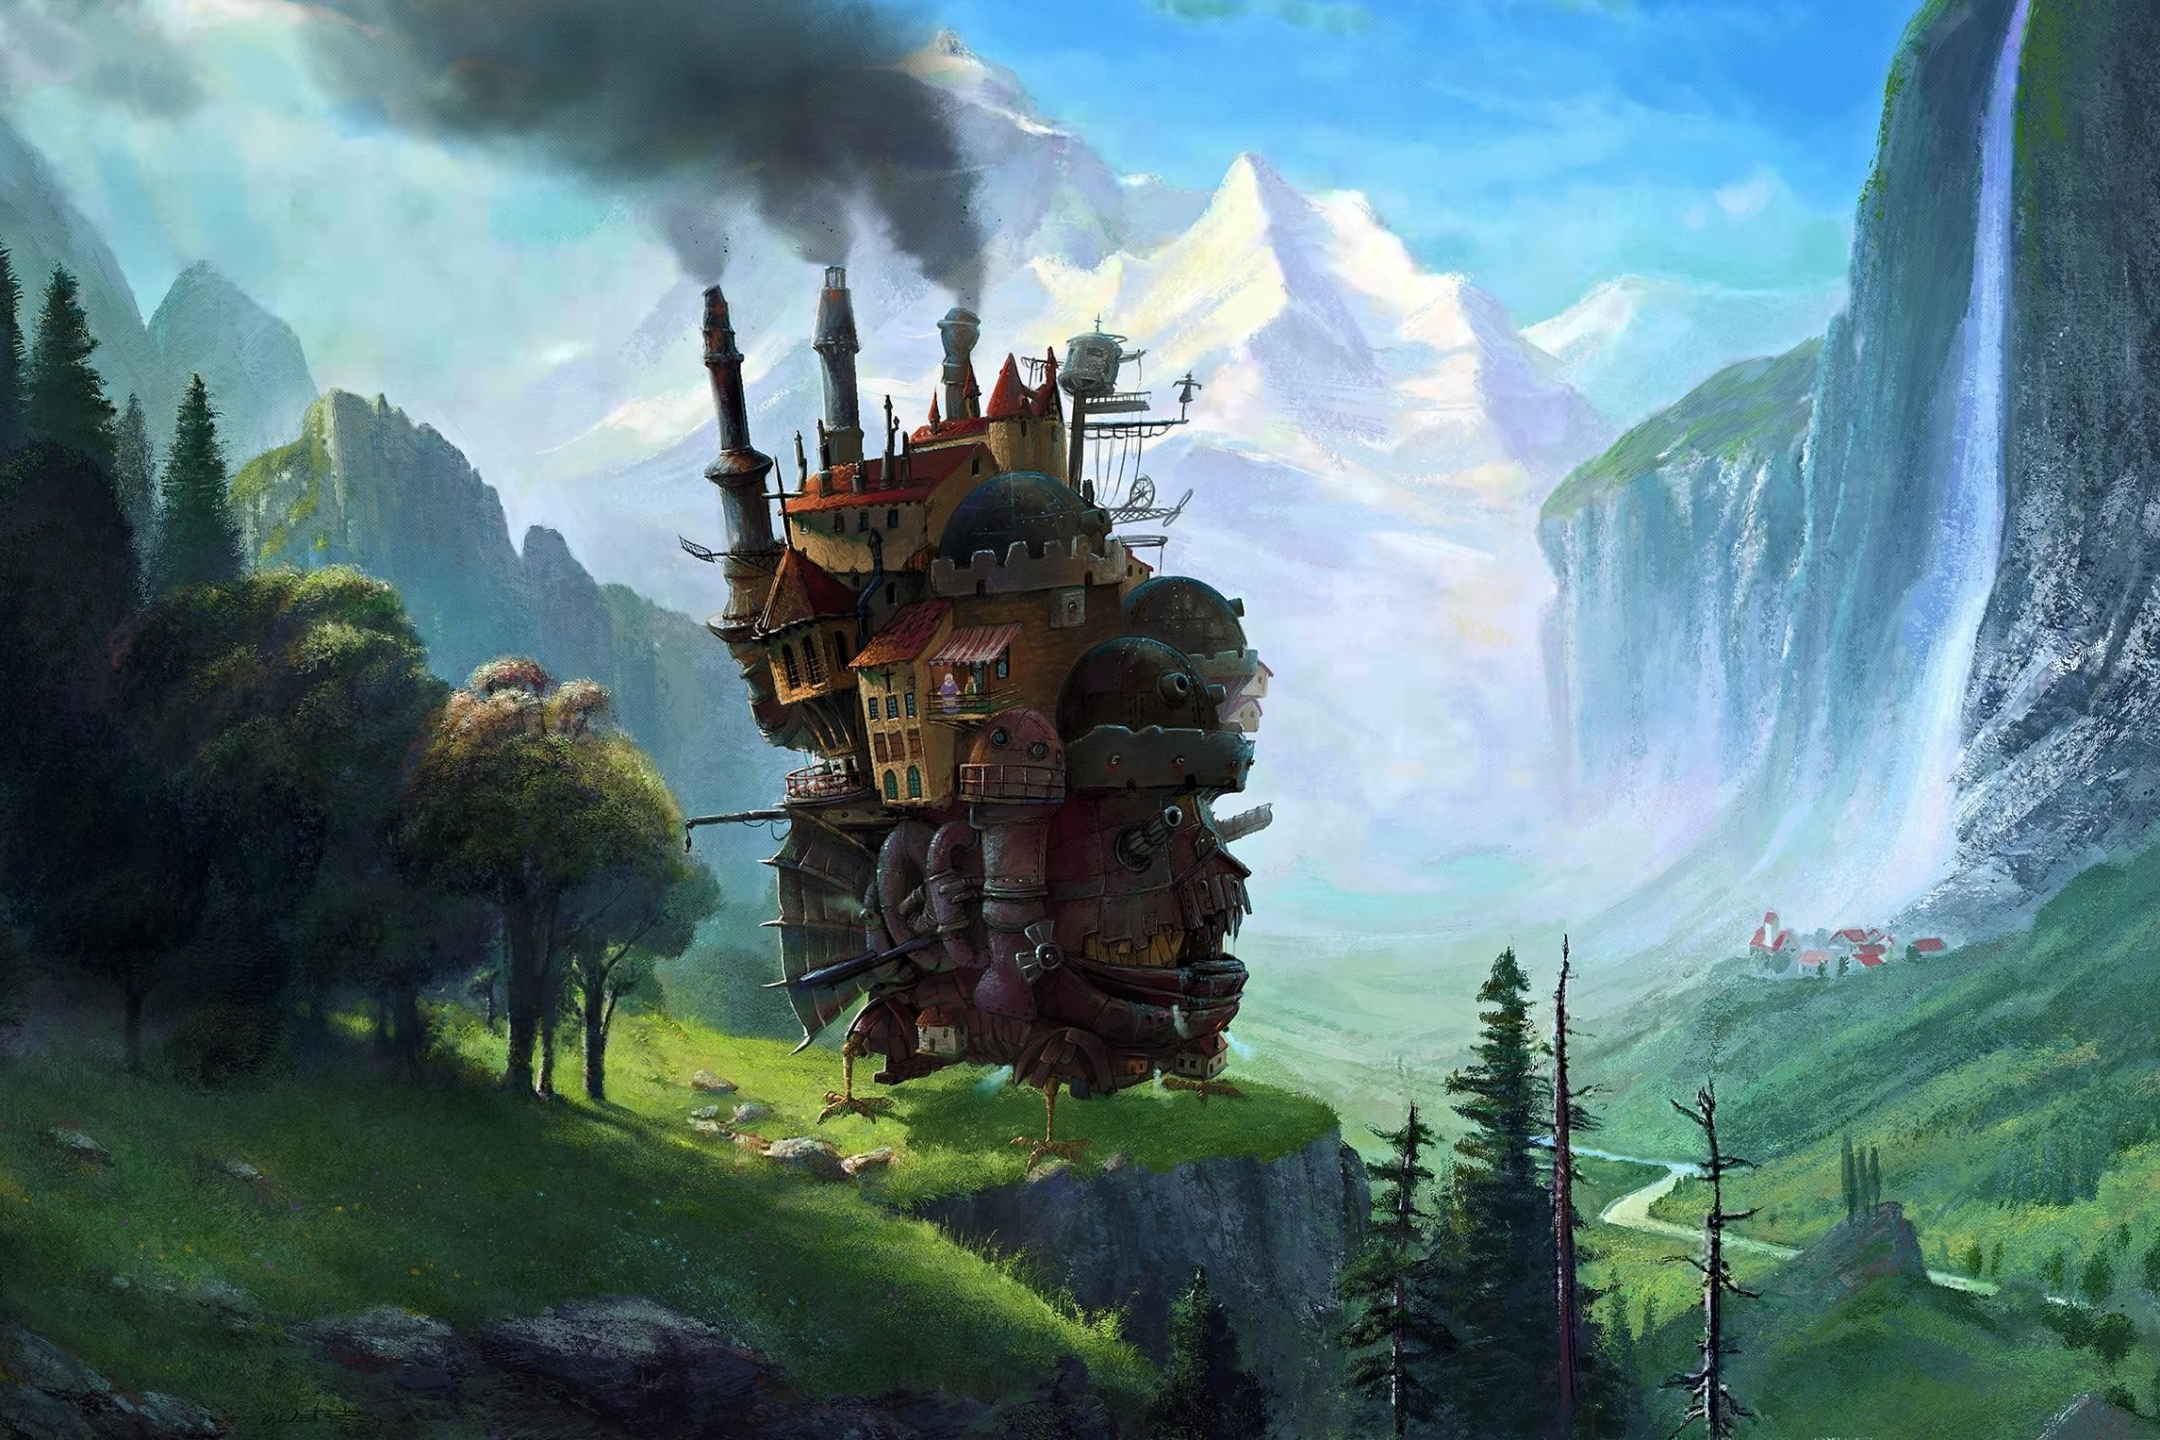 Anime Howl S Moving Castle 2160x1440 Wallpaper Id 851706